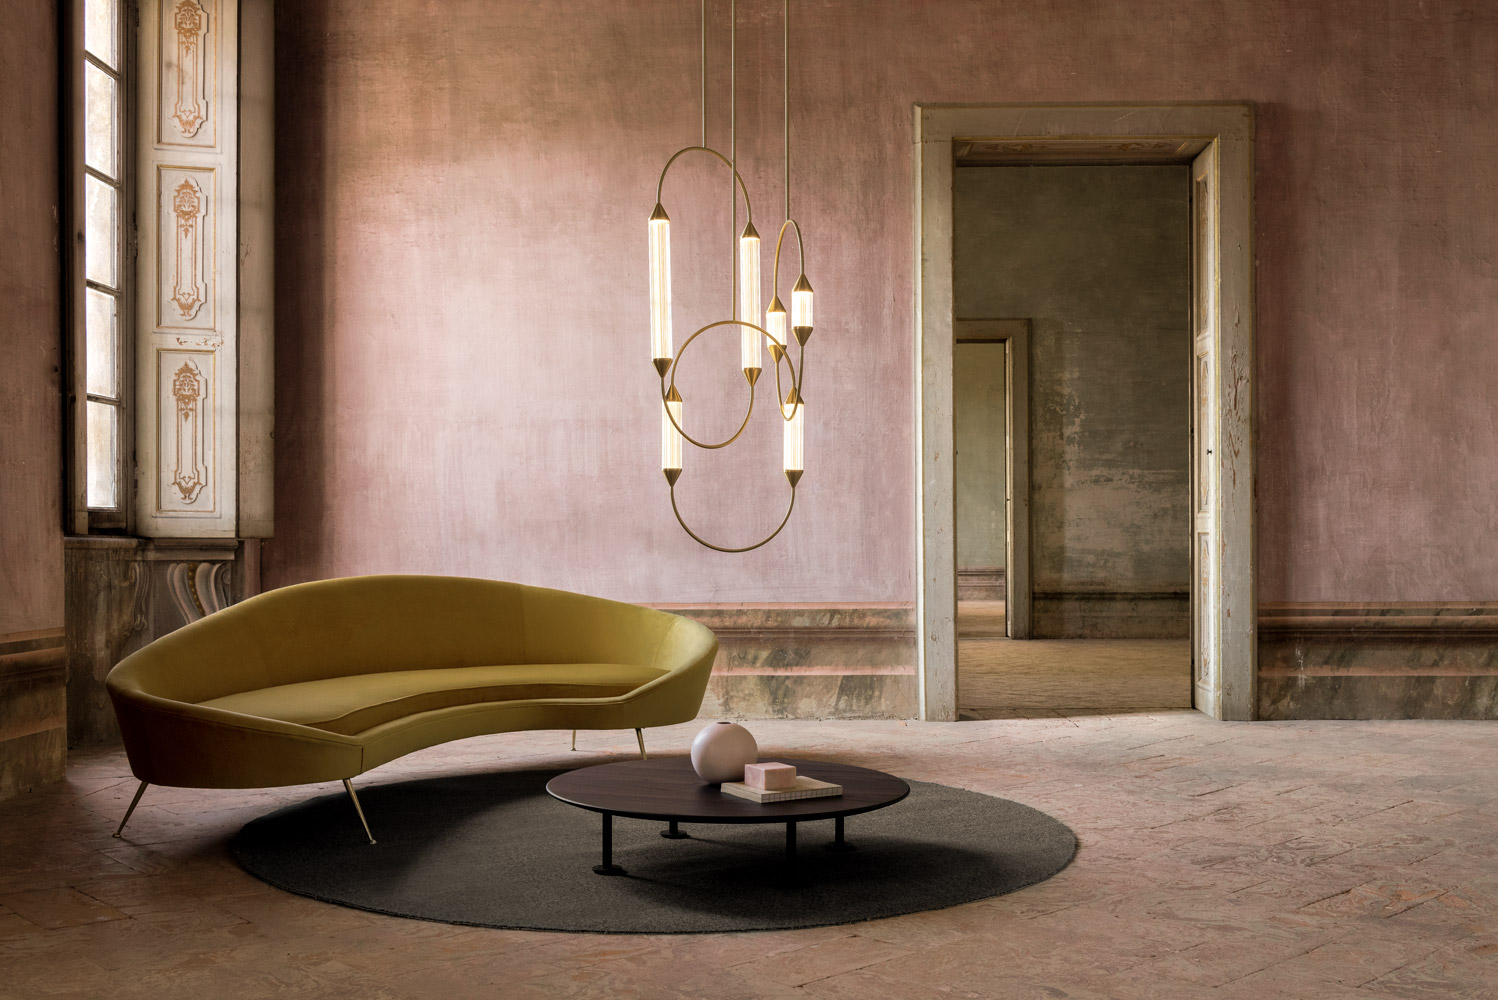 Giopato_coombes_Ph_Nathalie_Krag_2019_Cirque-Chandelier-42_low.jpg